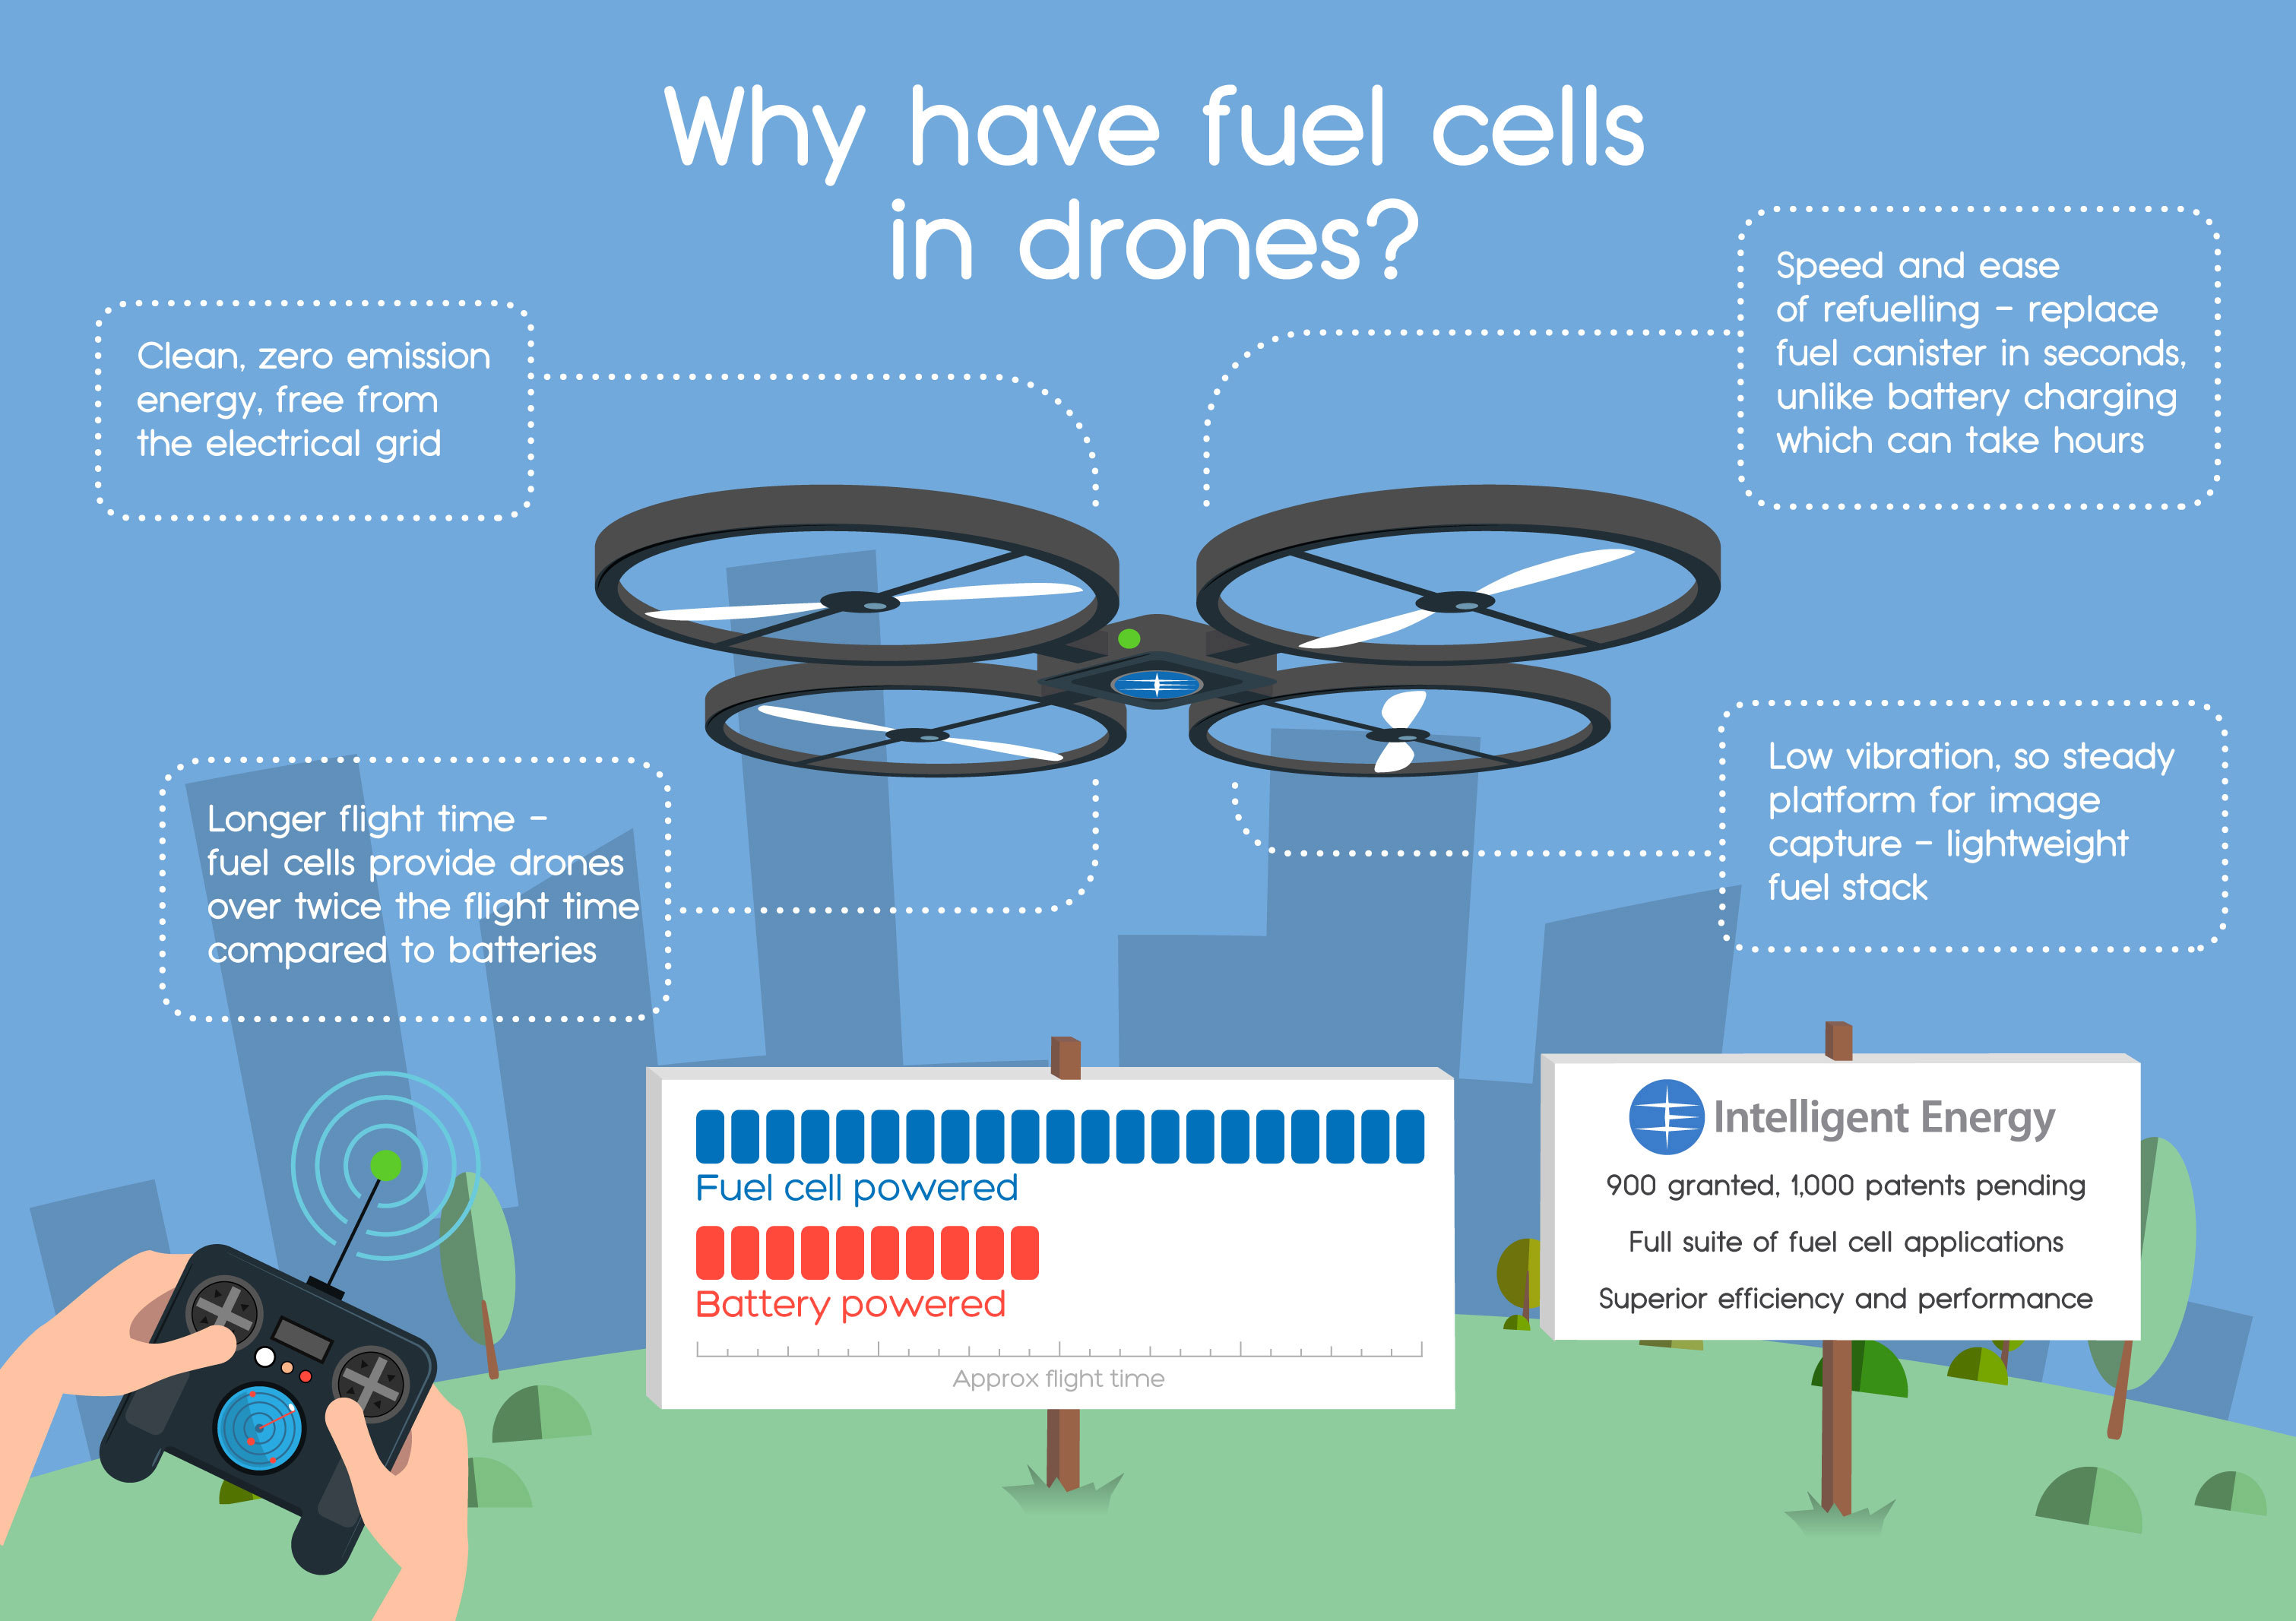 hight resolution of industrial applications of hydrogen fuel cells simple diagram business wire n d drone infographic retrieved 14th august 2018 from